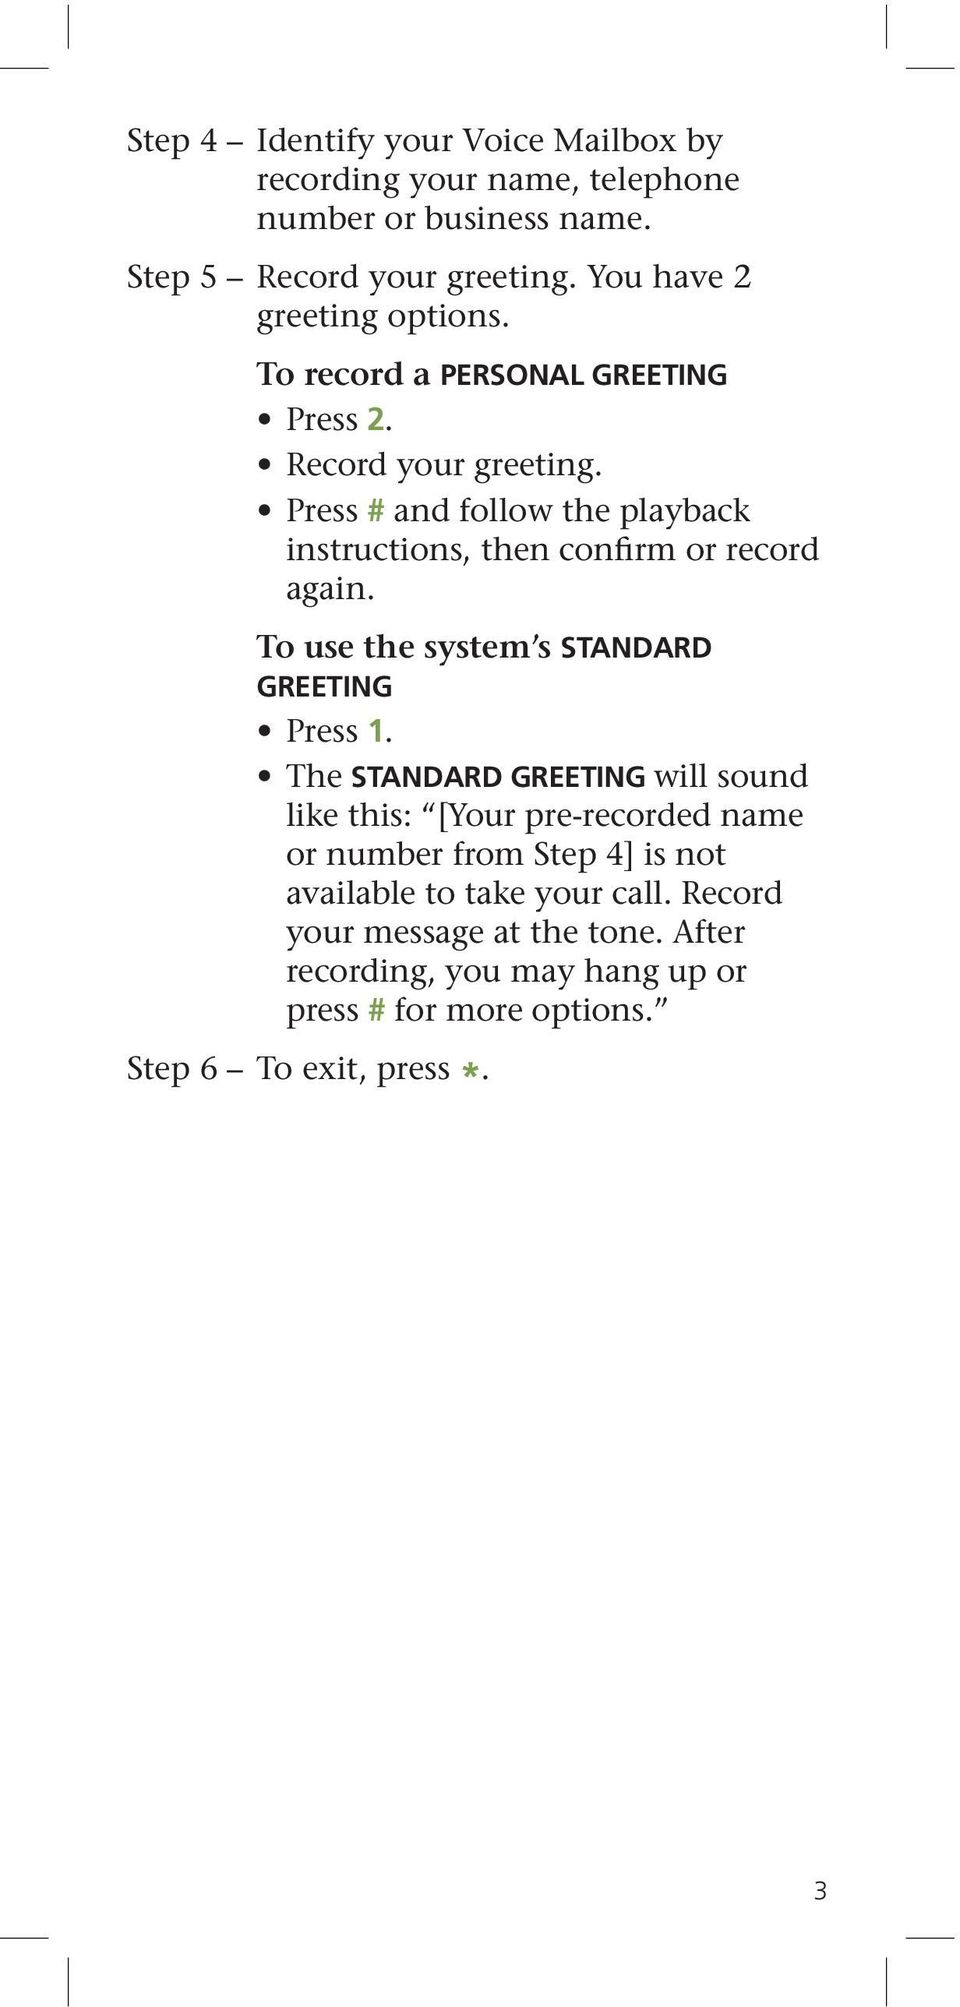 Press # and follow the playback instructions, then confirm or record again. To use the system s STANDARD GREETING Press 1.